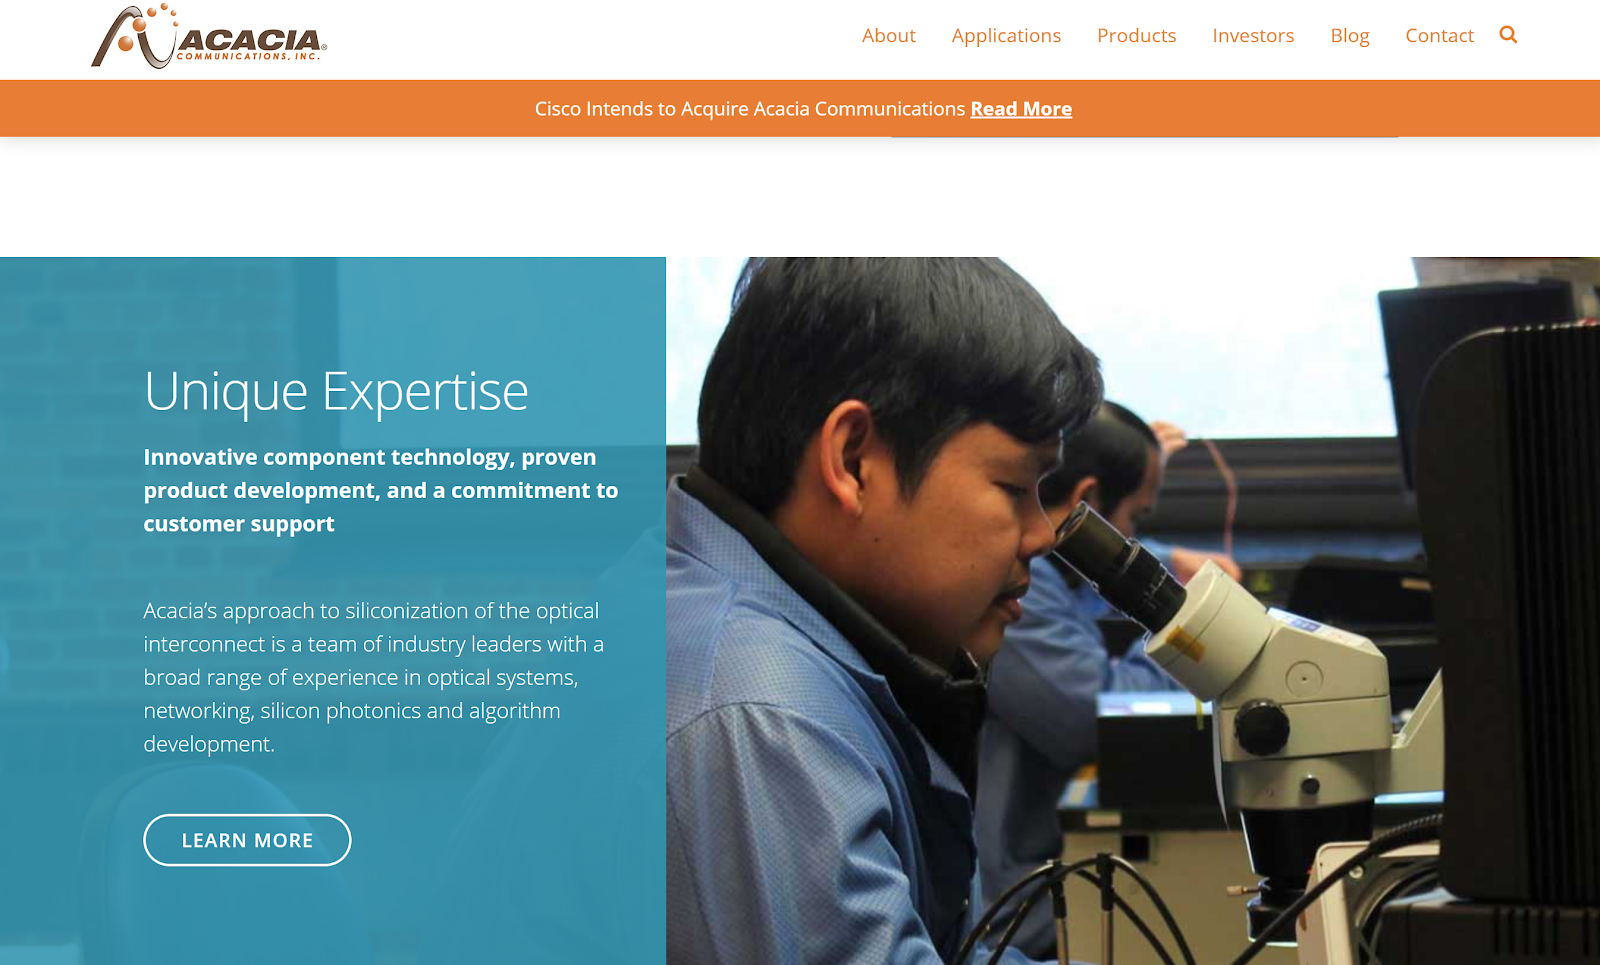 man looking into microscope on manufacturing website to express the company's unique expertise